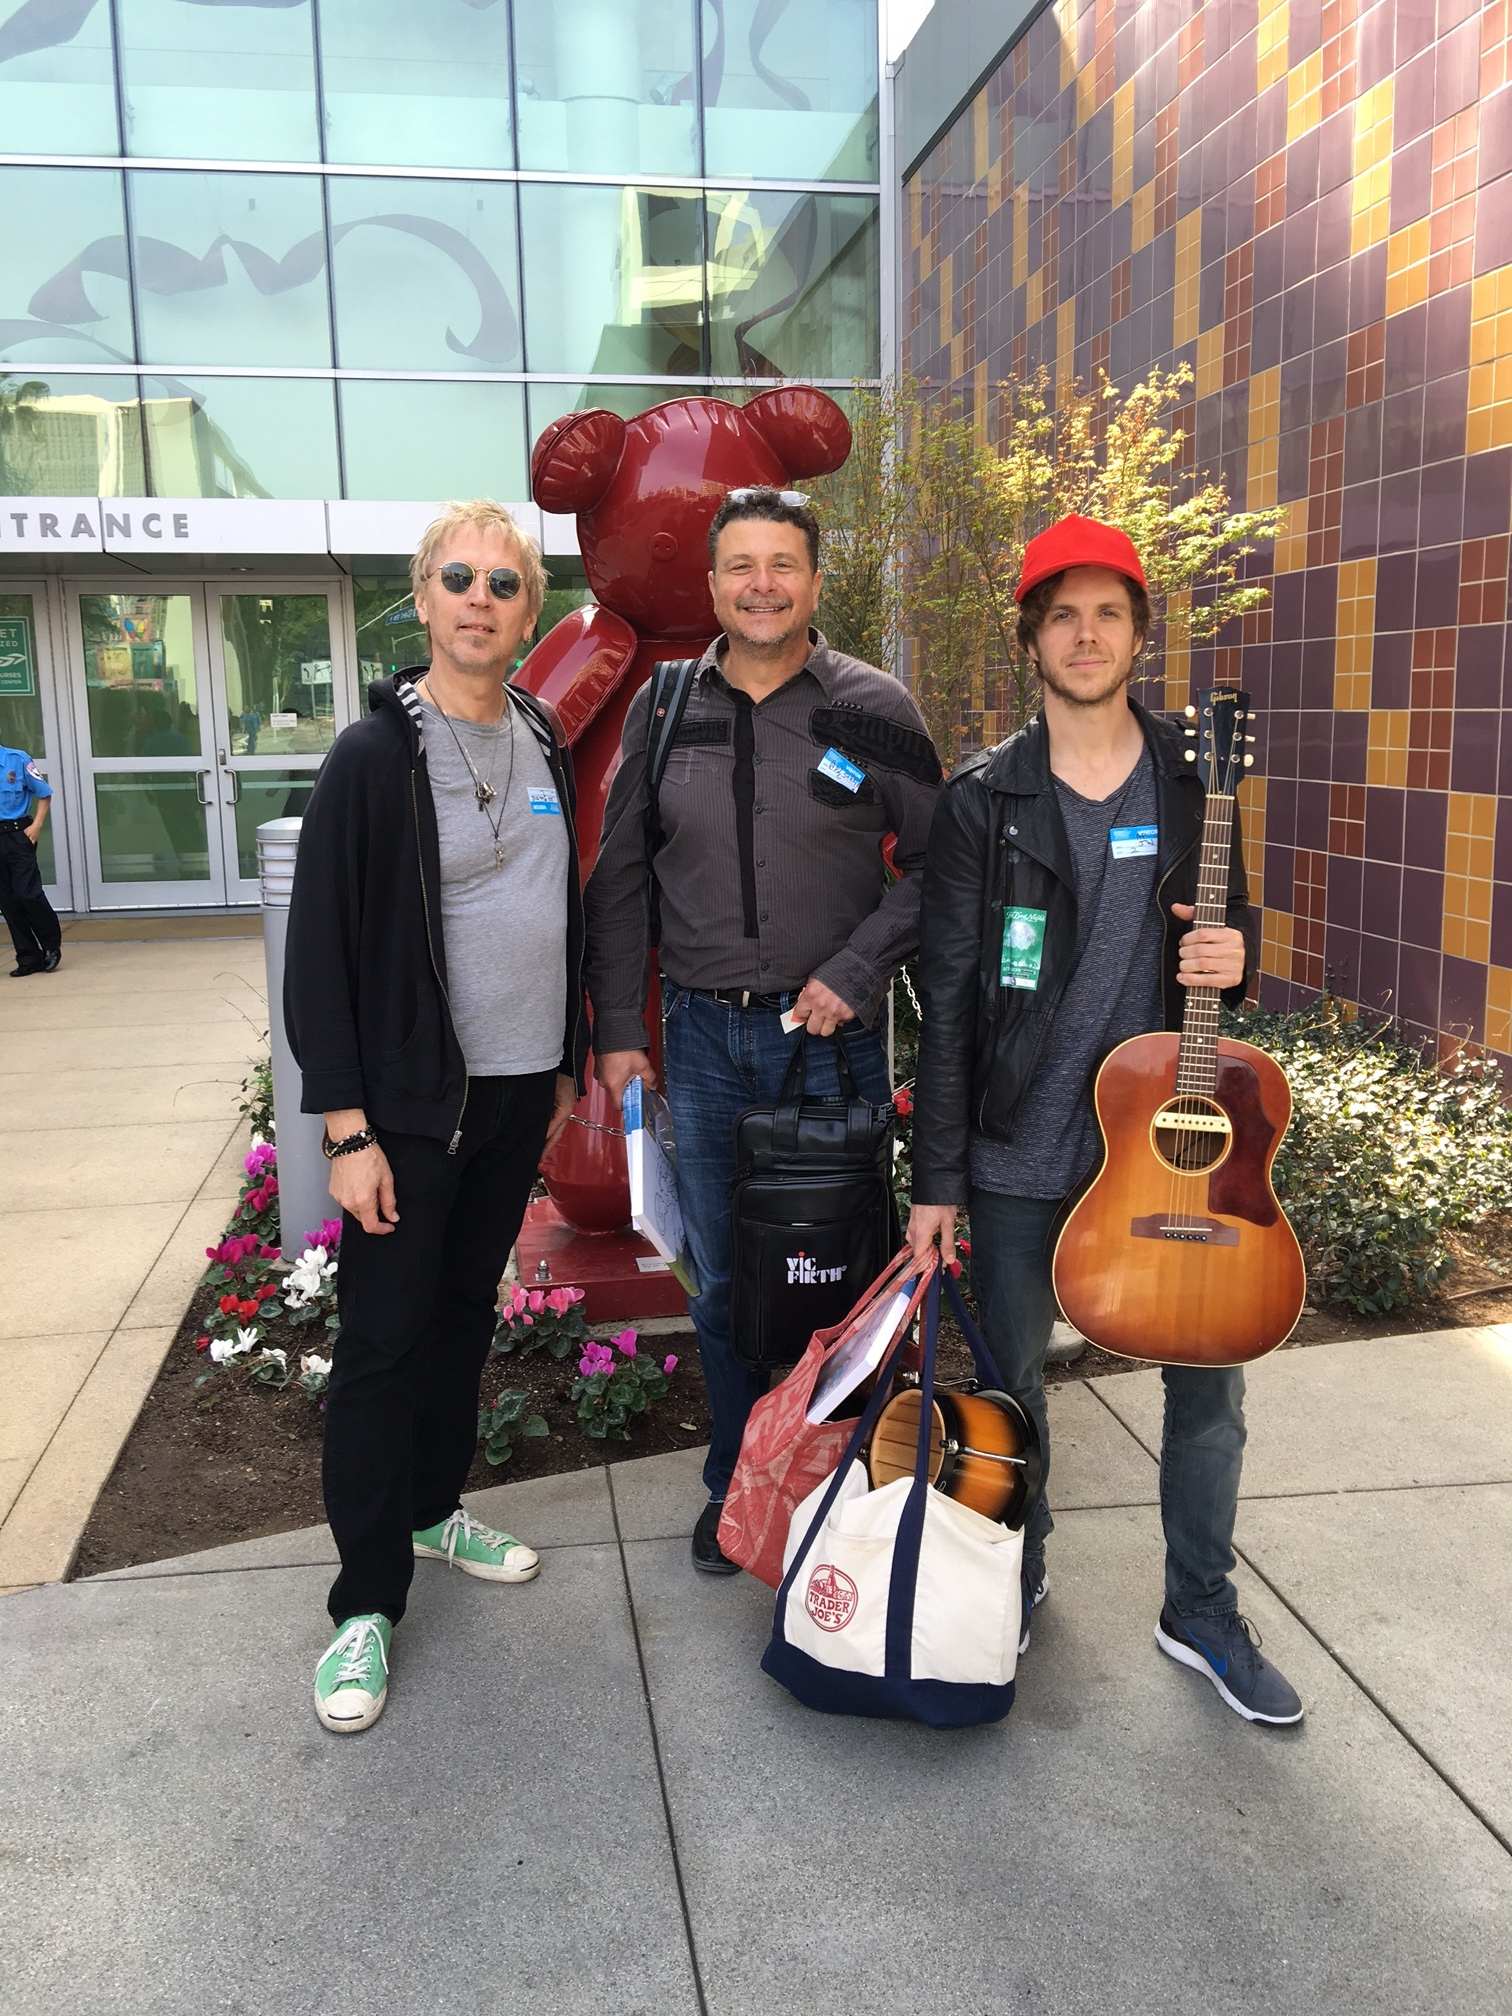 Paul Kingery, Pat Bautz, Dash Hutton After Performing at Children's Hospital Los Angeles Photo by Laurie Hutton | 2016